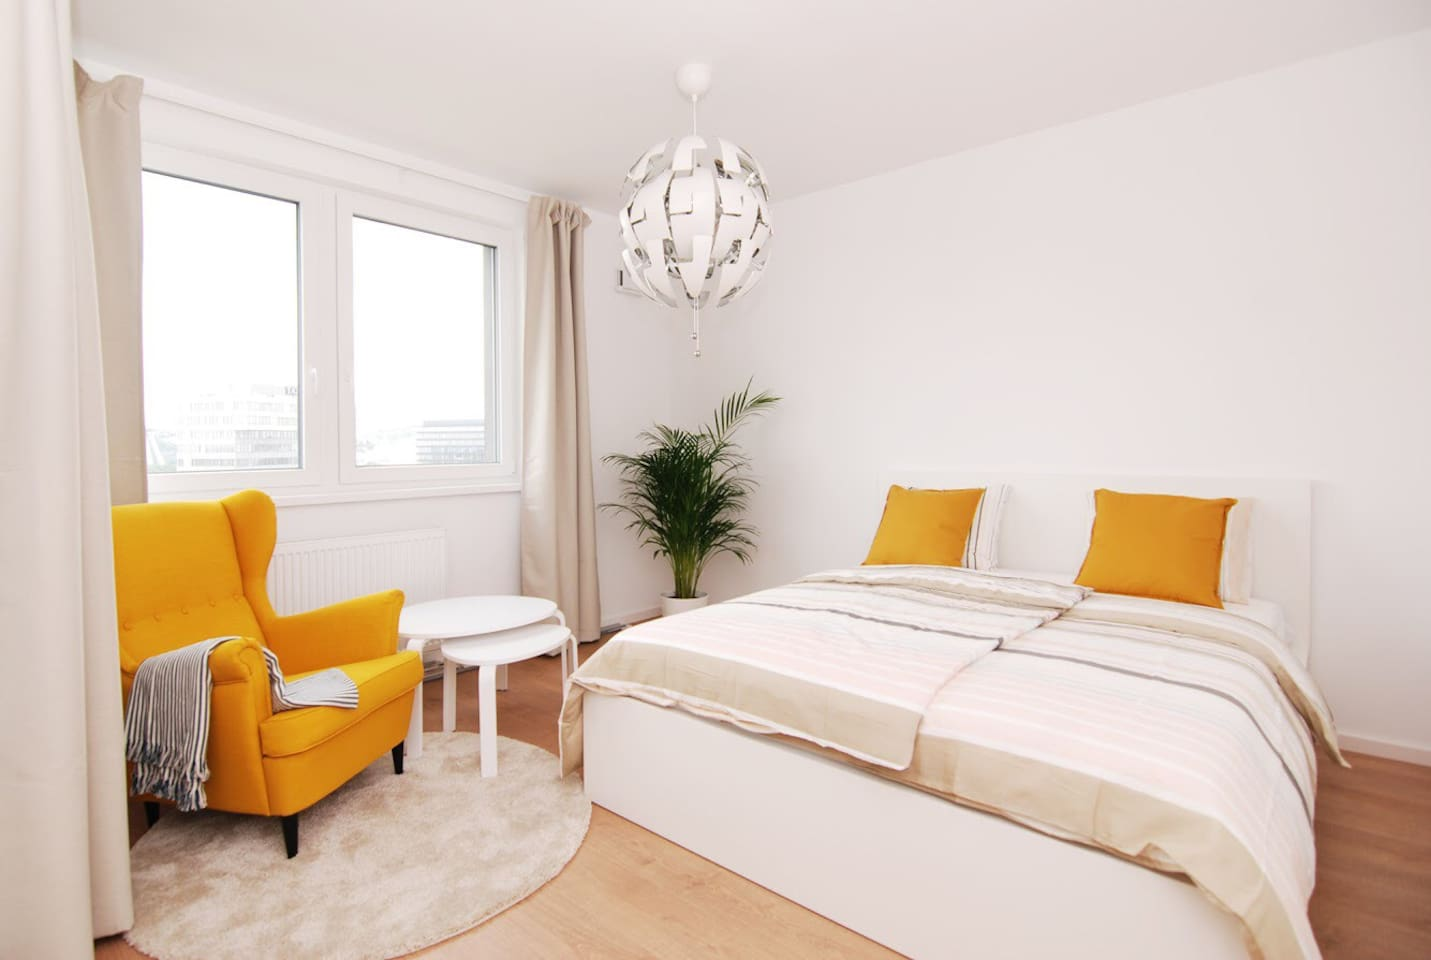 Spacious living area with king size bed